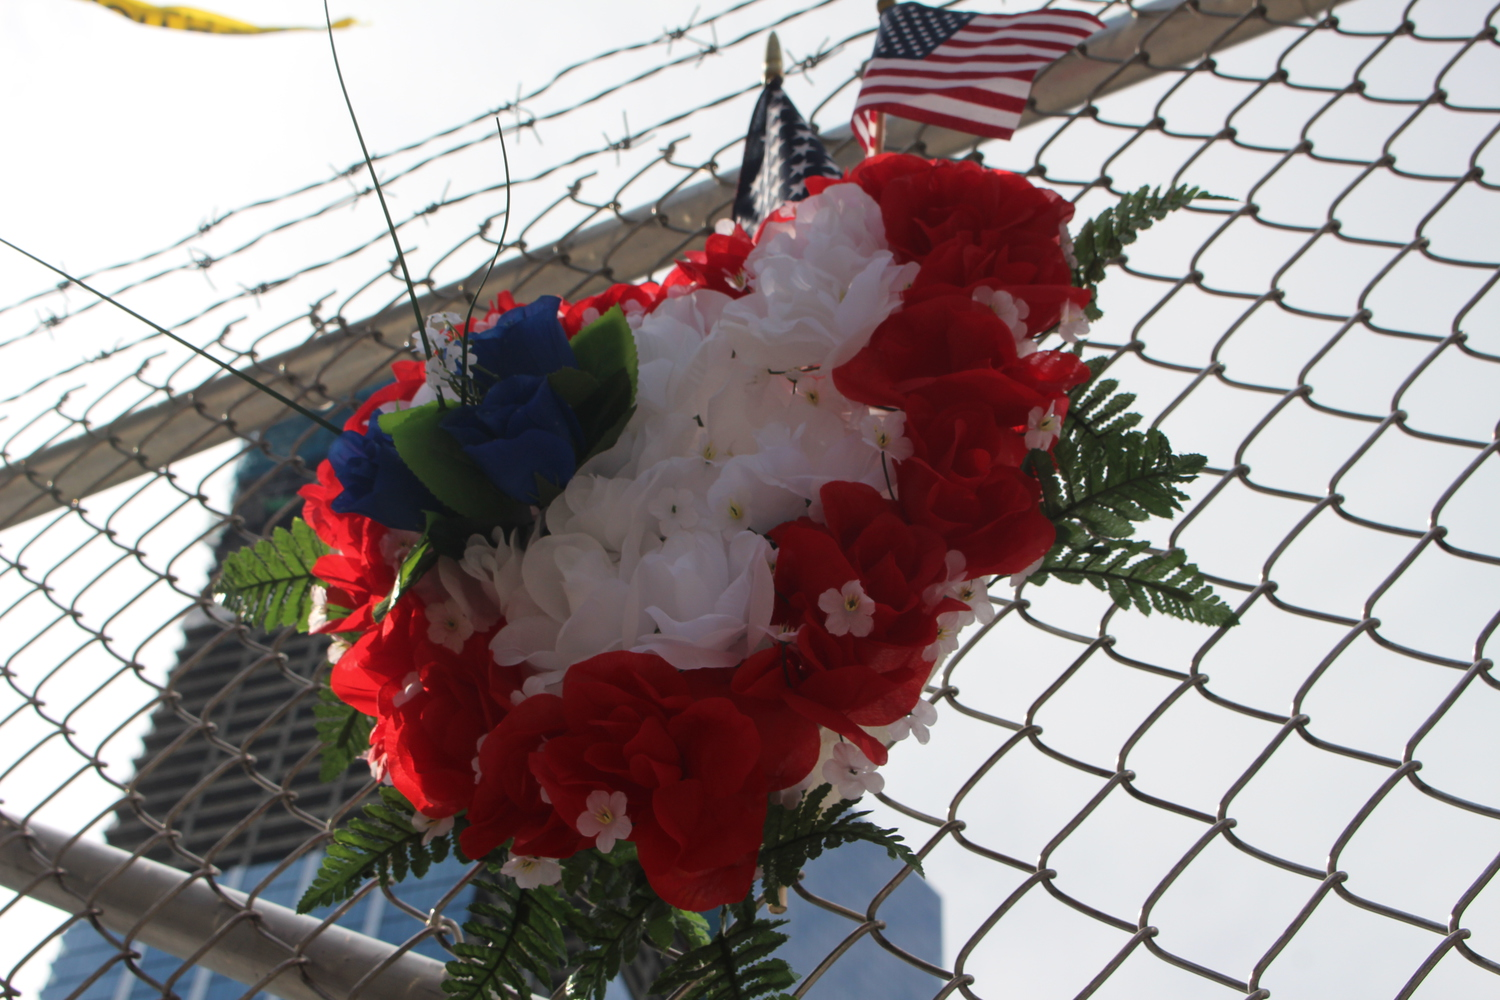 detail shot | An American flag and order of flowers hung on a fence outside of the World Trade Center Site. Photo by Brelaun Douglas.